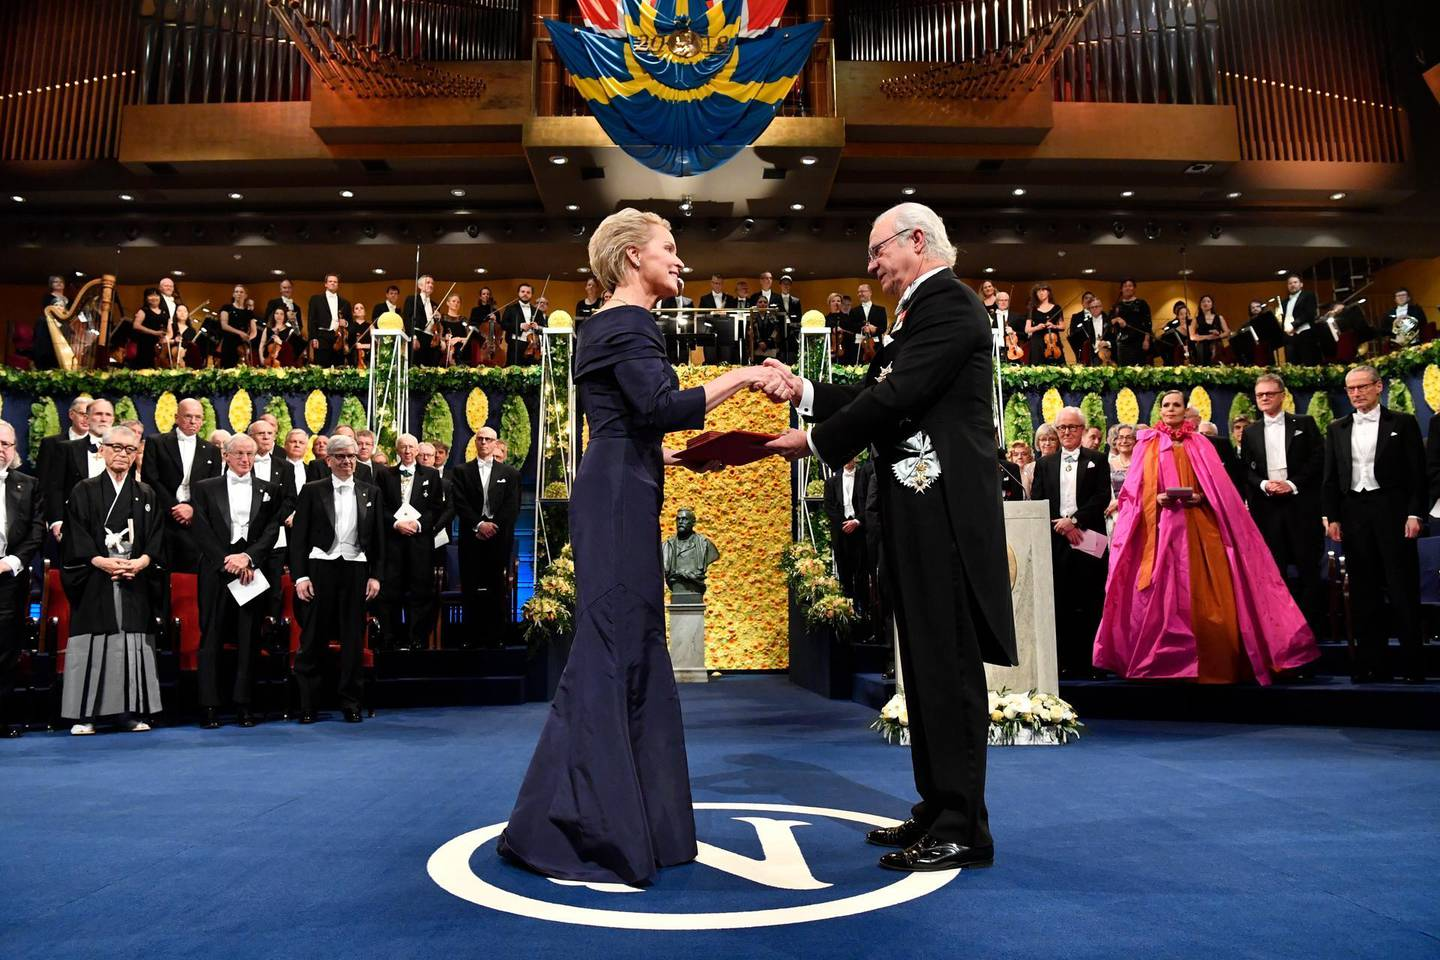 """FILE - In this Dec. 10, 2018, file photo, Chemistry laureate Frances H. Arnold, left, receives the prize from King Carl Gustaf of Sweden, during the Nobel Prize award ceremony, at the Stockholm Concert Hall, in Stockholm. The Nobels, with new winners announced starting Monday, Oct. 5, 2020, often concentrate on unheralded, methodical, basic science. """"Without basic science, you won't have cutting-edge applied science,"""" said Frances Arnold, a Caltech chemical engineer who won the 2018 Nobel in chemistry. (Pontus Lundahl/Pool Photo via AP, File)"""